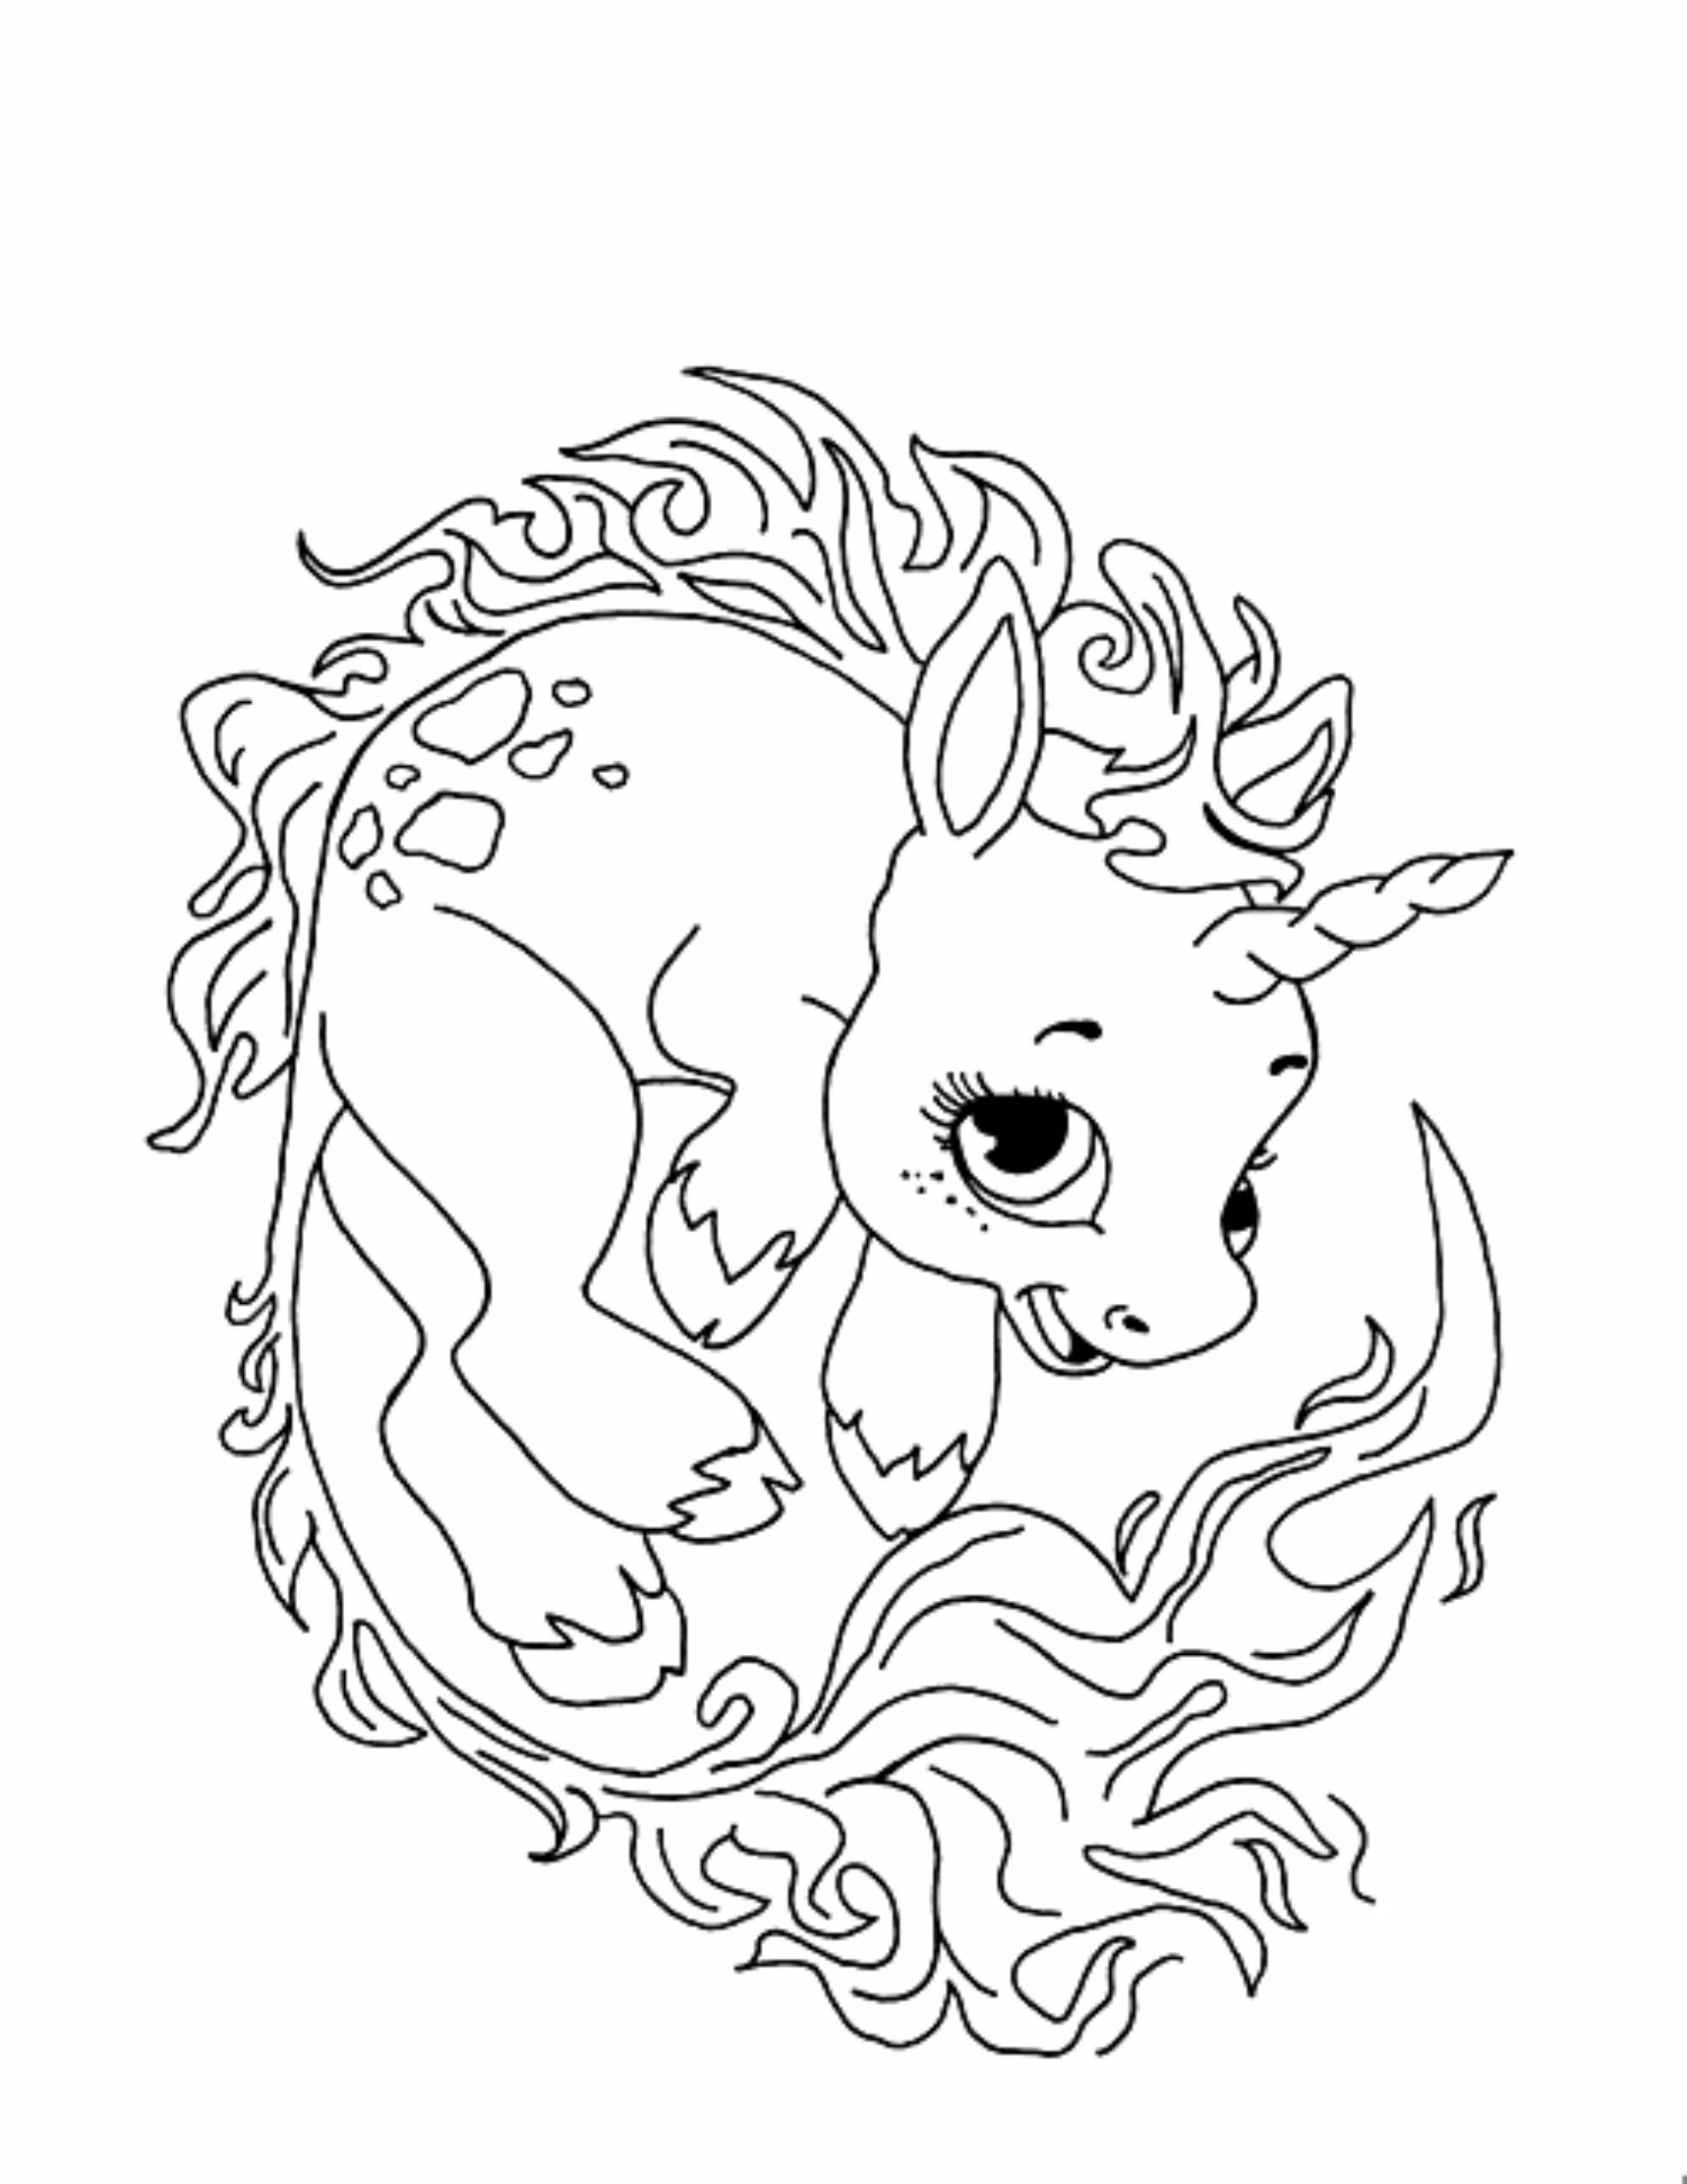 coloring pages of unicorns to print - print download unicorn coloring pages for children